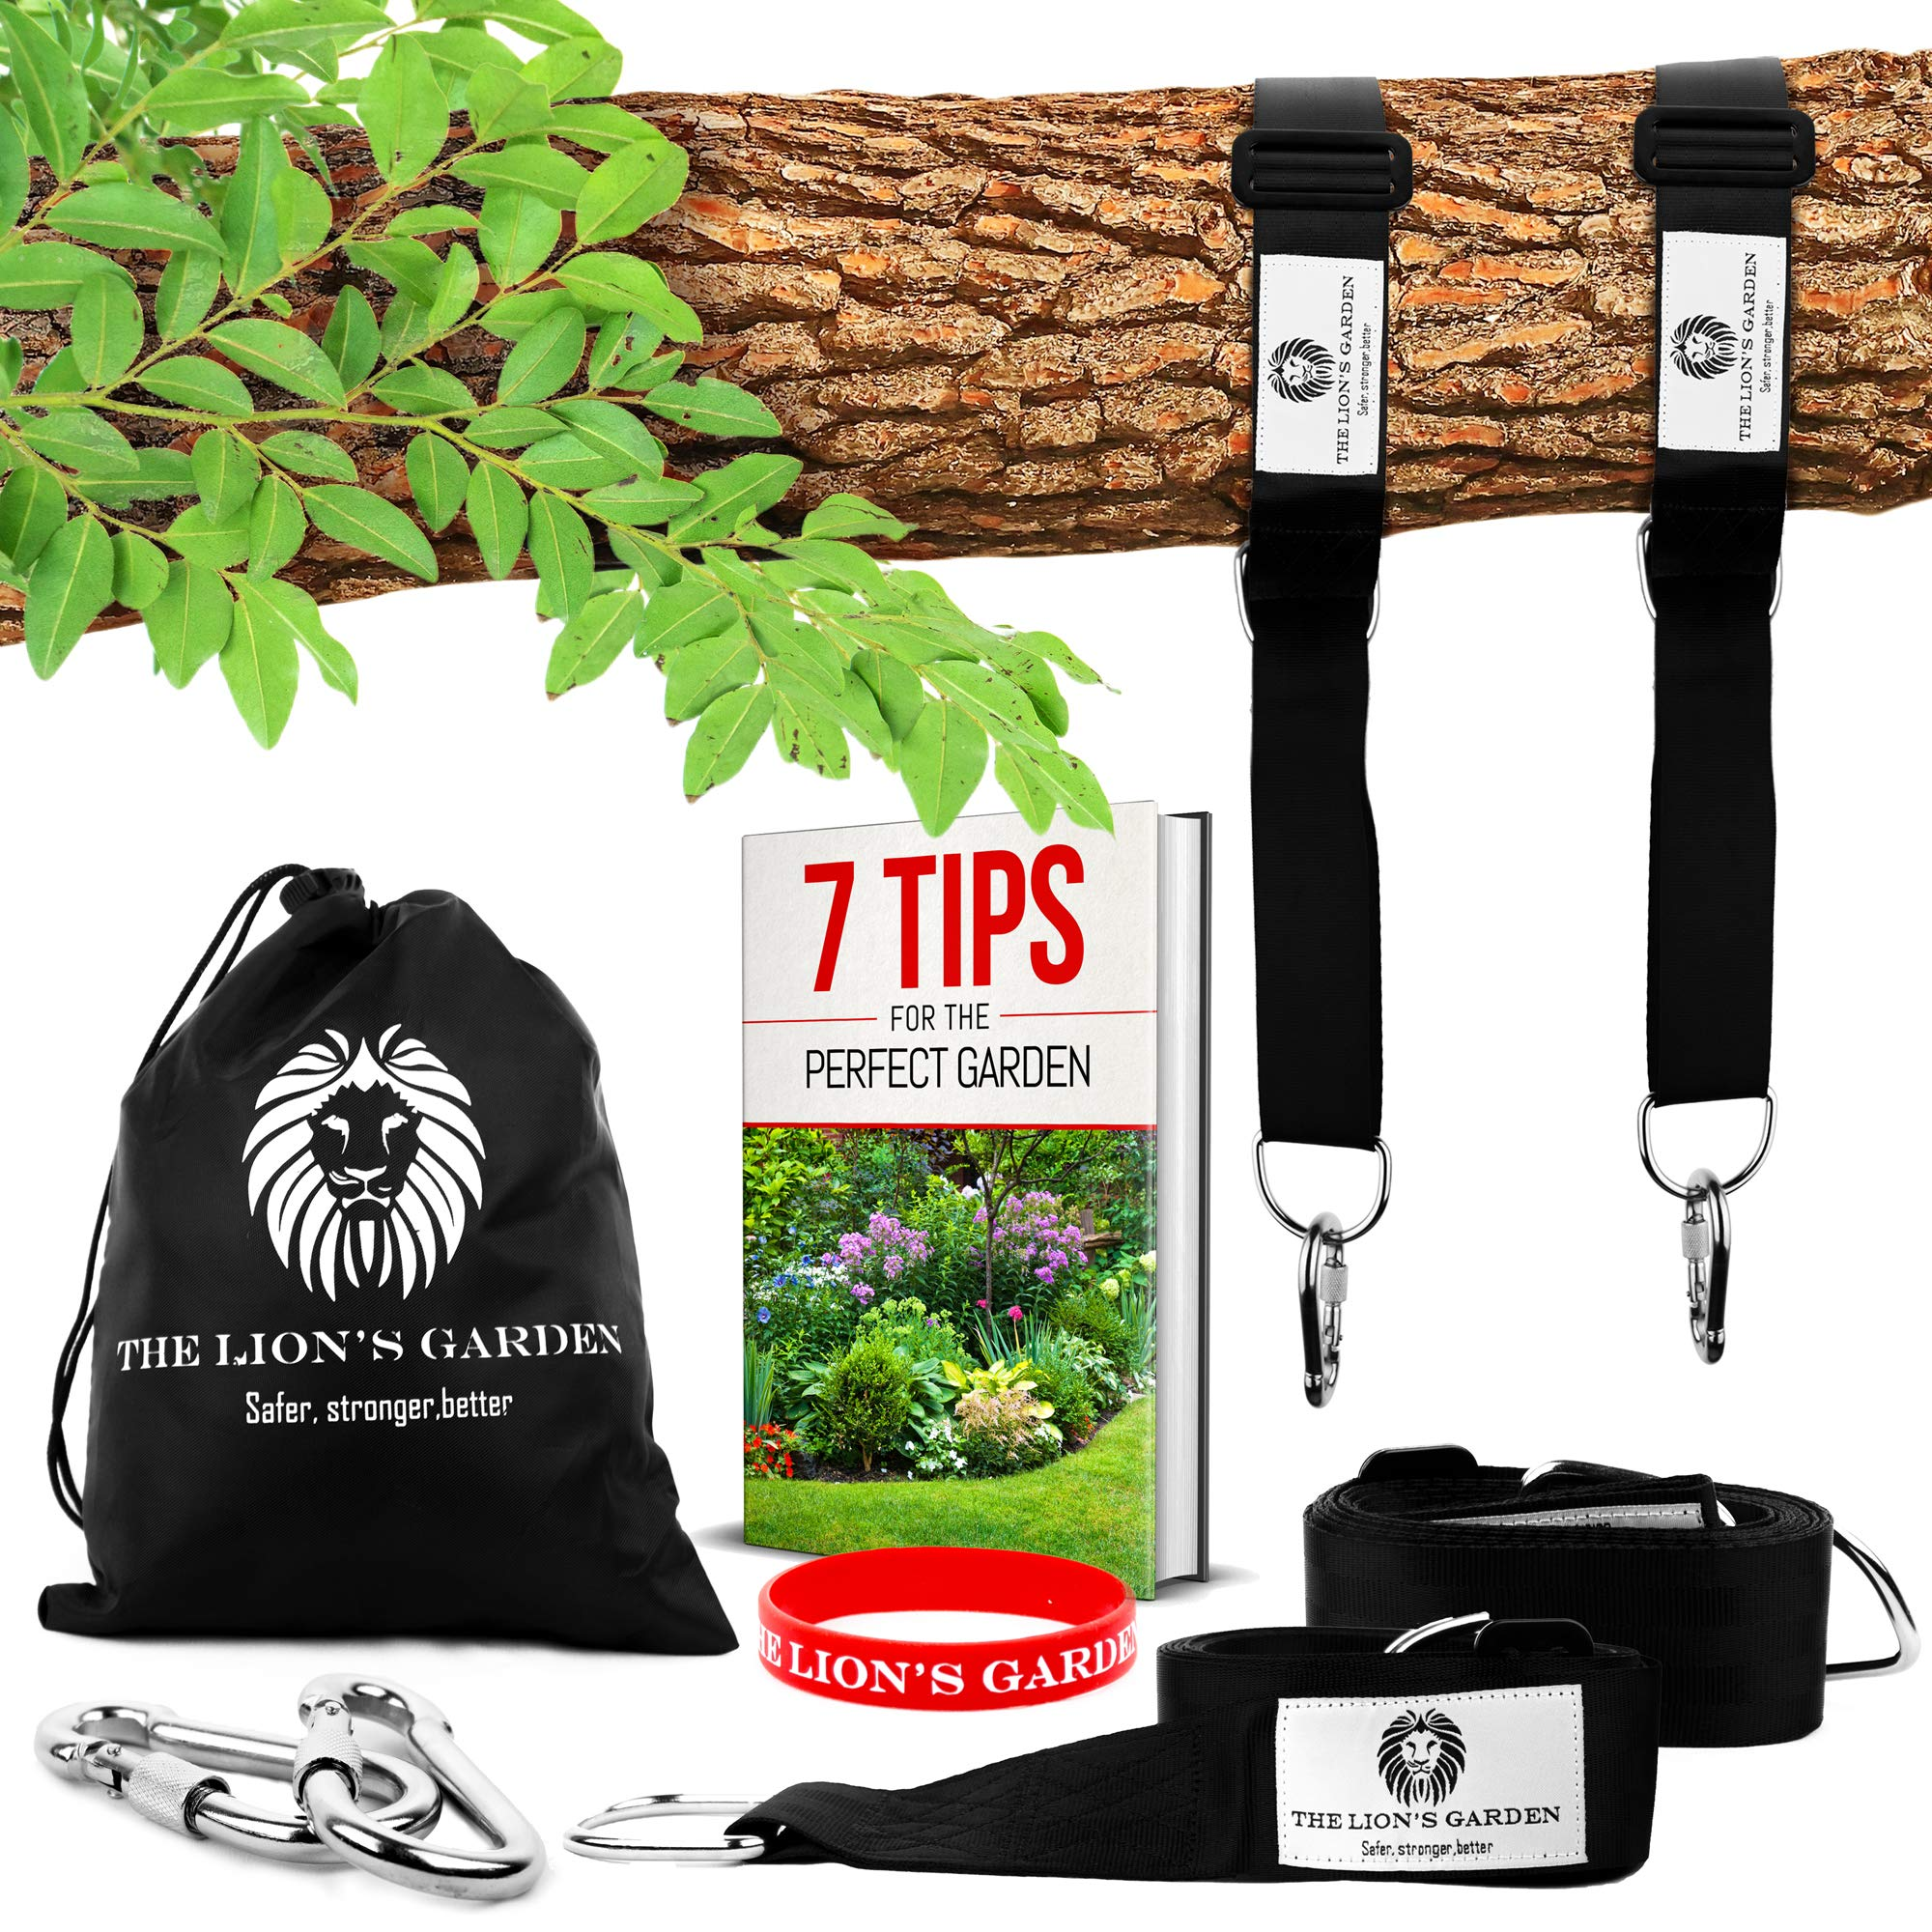 Adjustable 5-10ft Premium Tree Swing Straps Hanging Kit - The Lion's Garden Tree Swing Straps Hanging Kit Holds 3876 LBS With 2 Heavy Duty Carabiners - Perfect For Swings & Hammocks by The Lion's Garden